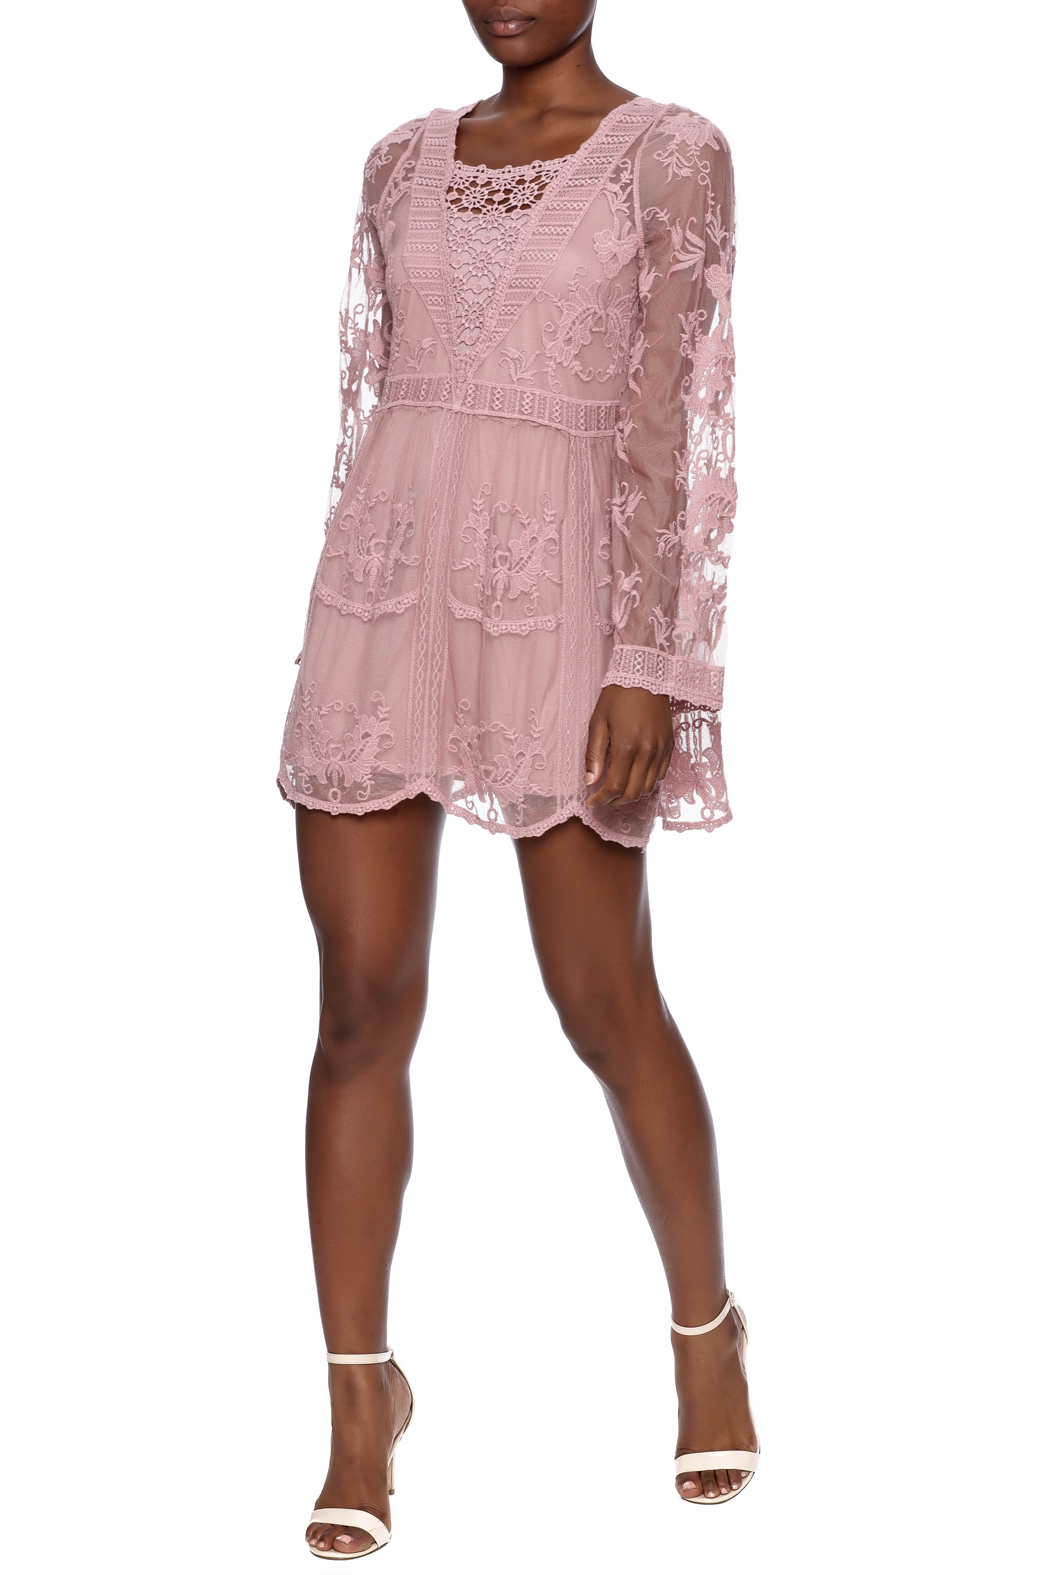 Mono Reno Mauve Lace Tunic from Pittsburgh by The Vintage Valet ...